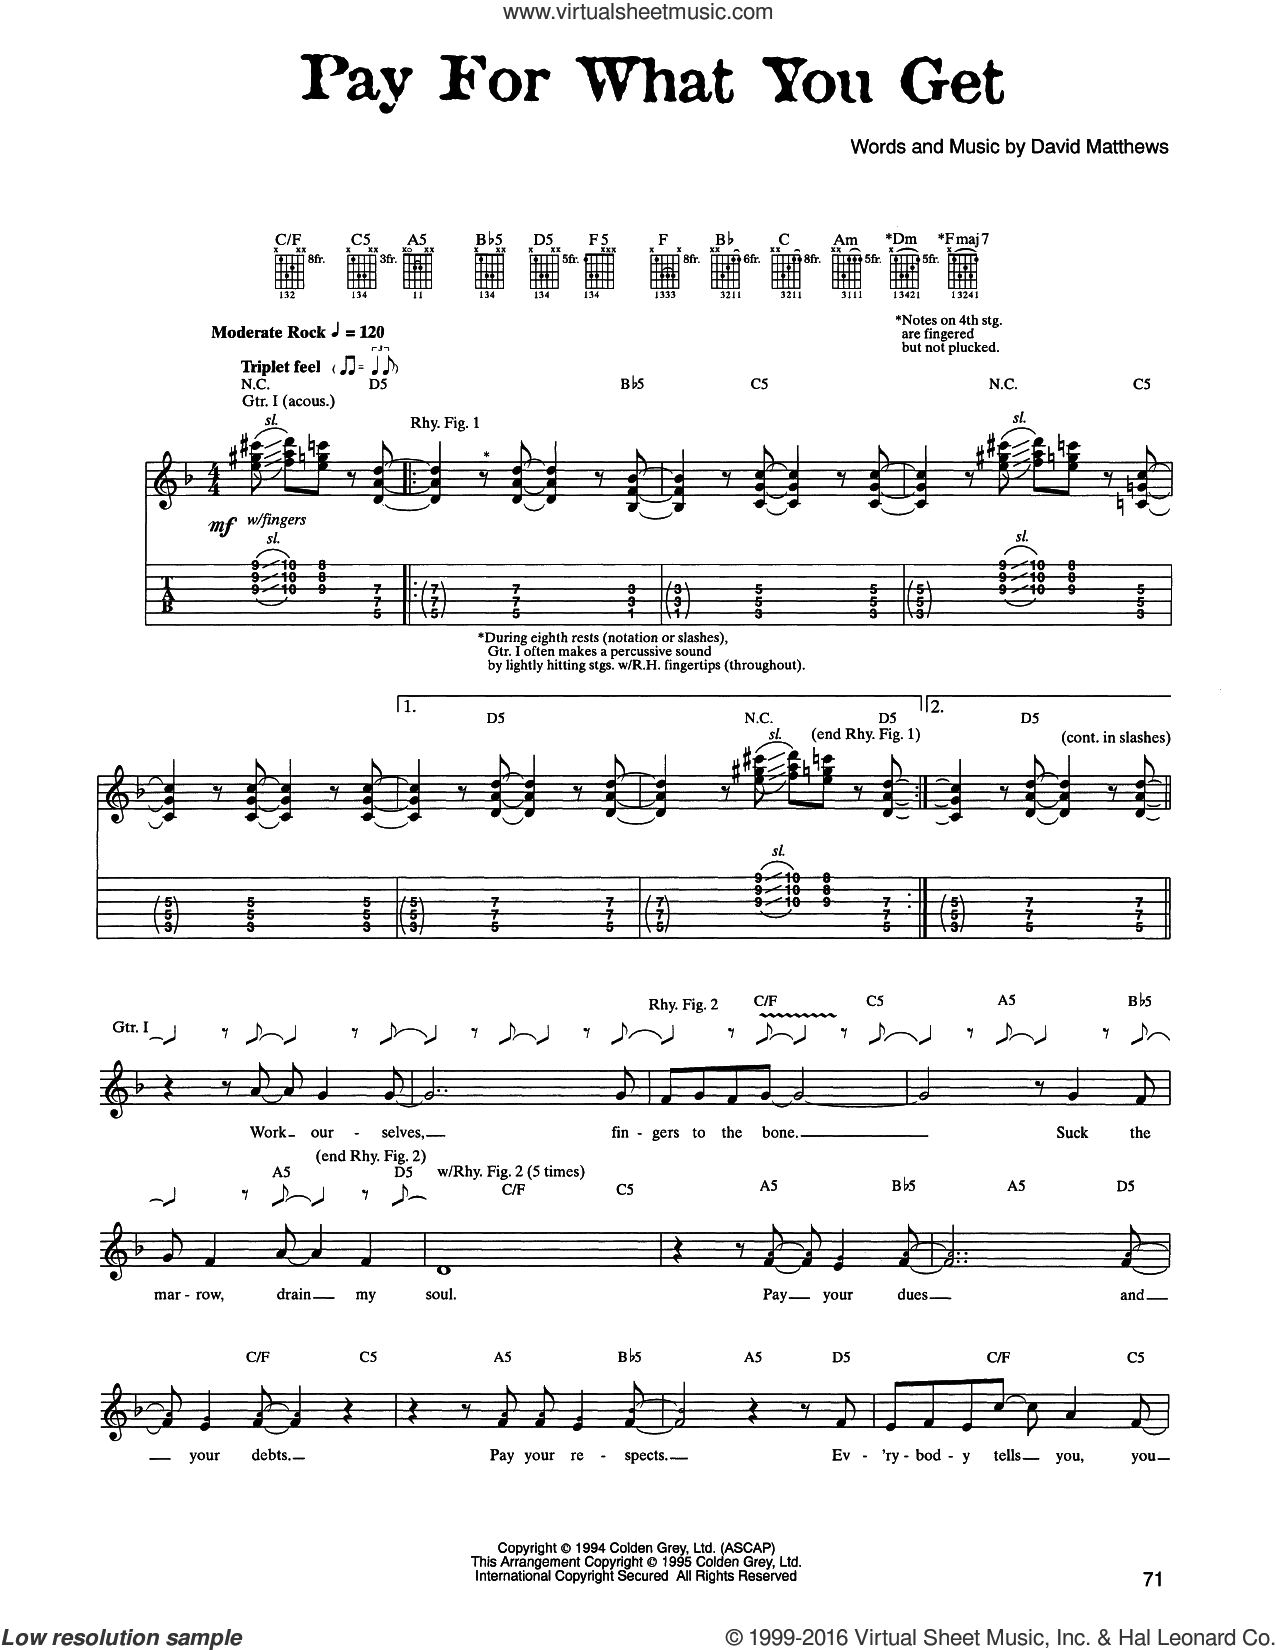 Pay For What You Get sheet music for guitar (tablature) by Dave Matthews Band. Score Image Preview.